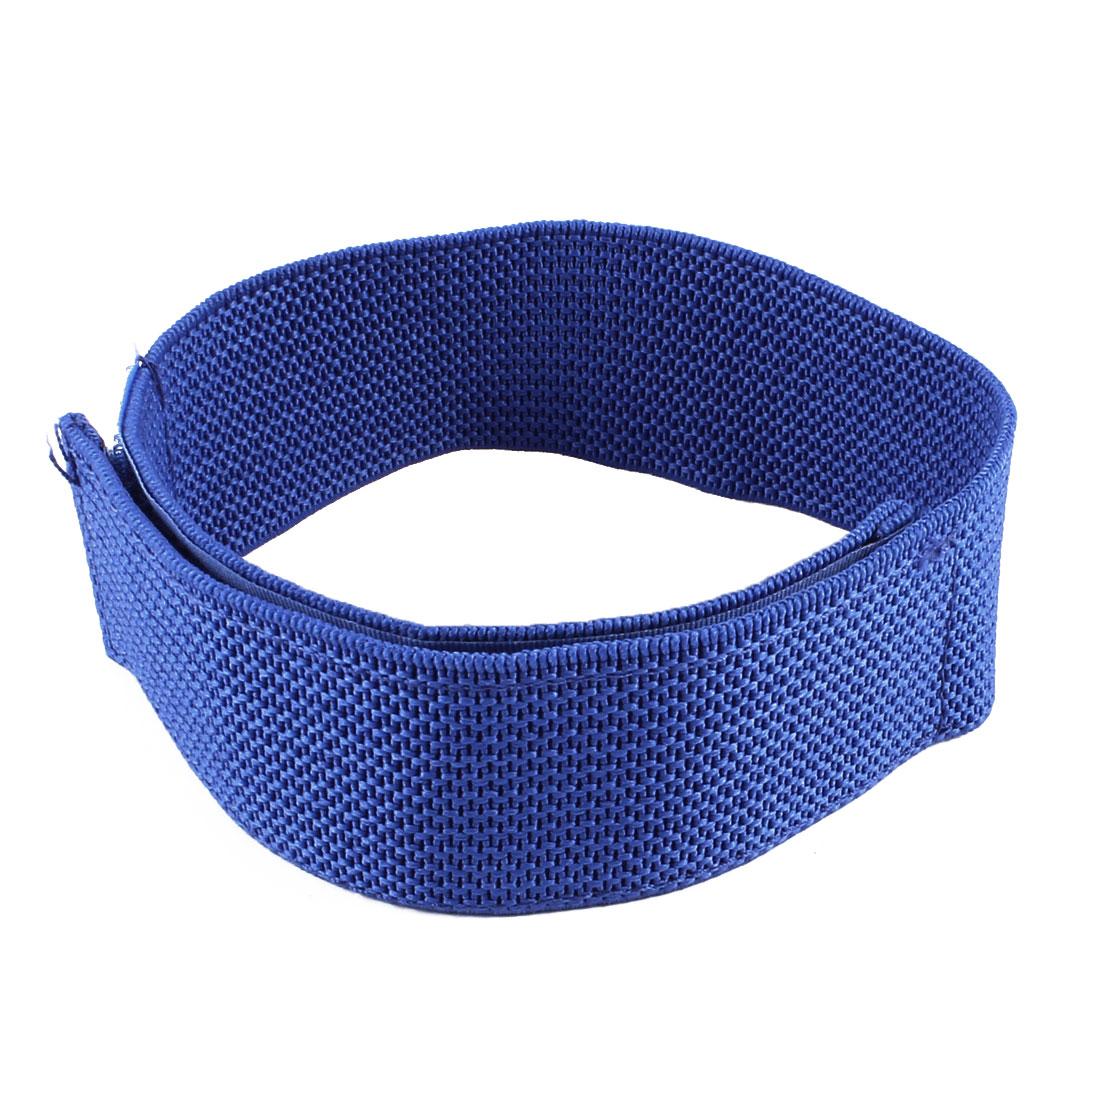 Textured Nonslip Elastic Fabric Strap 3 Legged Race Game Tie Blue